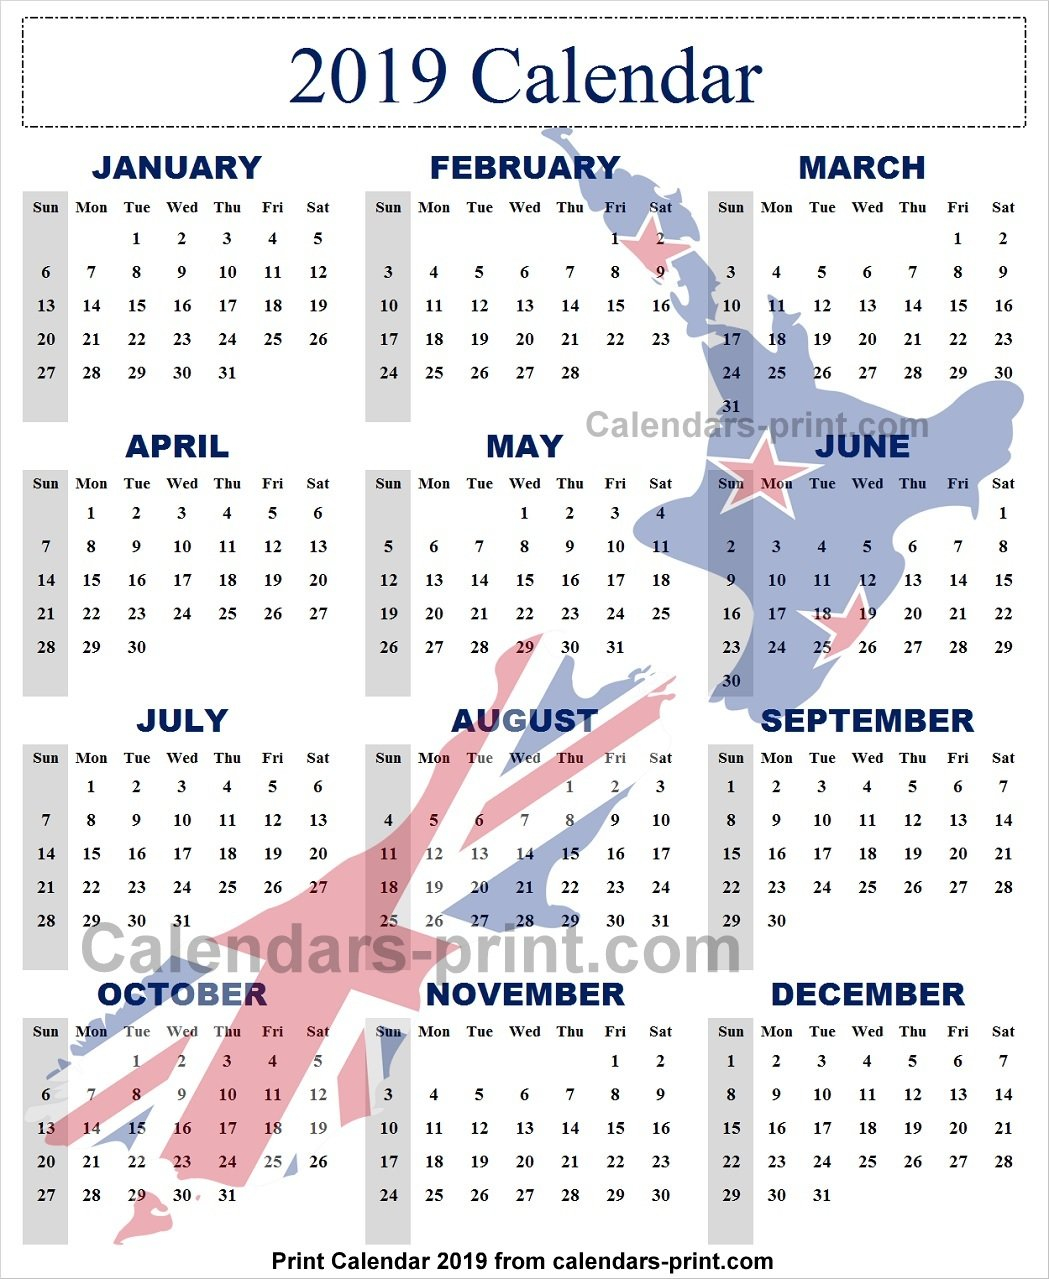 2019 Year Calendar Nz To Print Free | Download Blank Pdf Template Calendar 2019 Nz